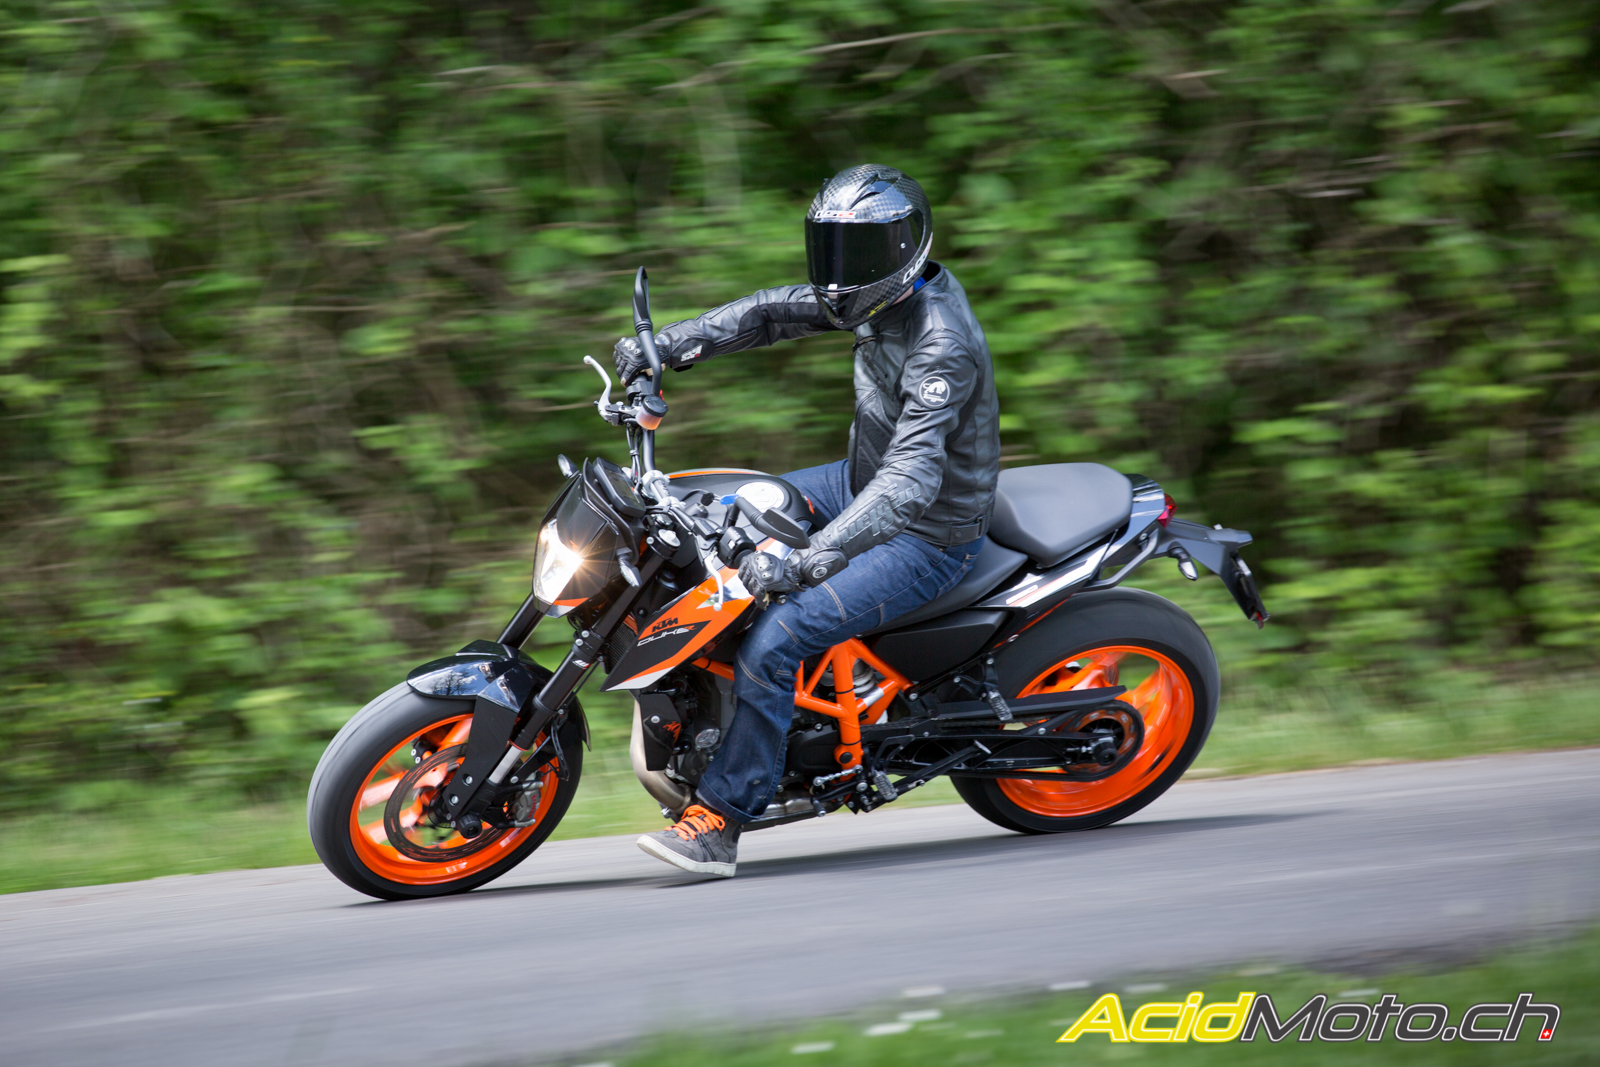 essai ktm 690 duke r 2016 gniahahaha page 2 sur 2 le site suisse de l. Black Bedroom Furniture Sets. Home Design Ideas